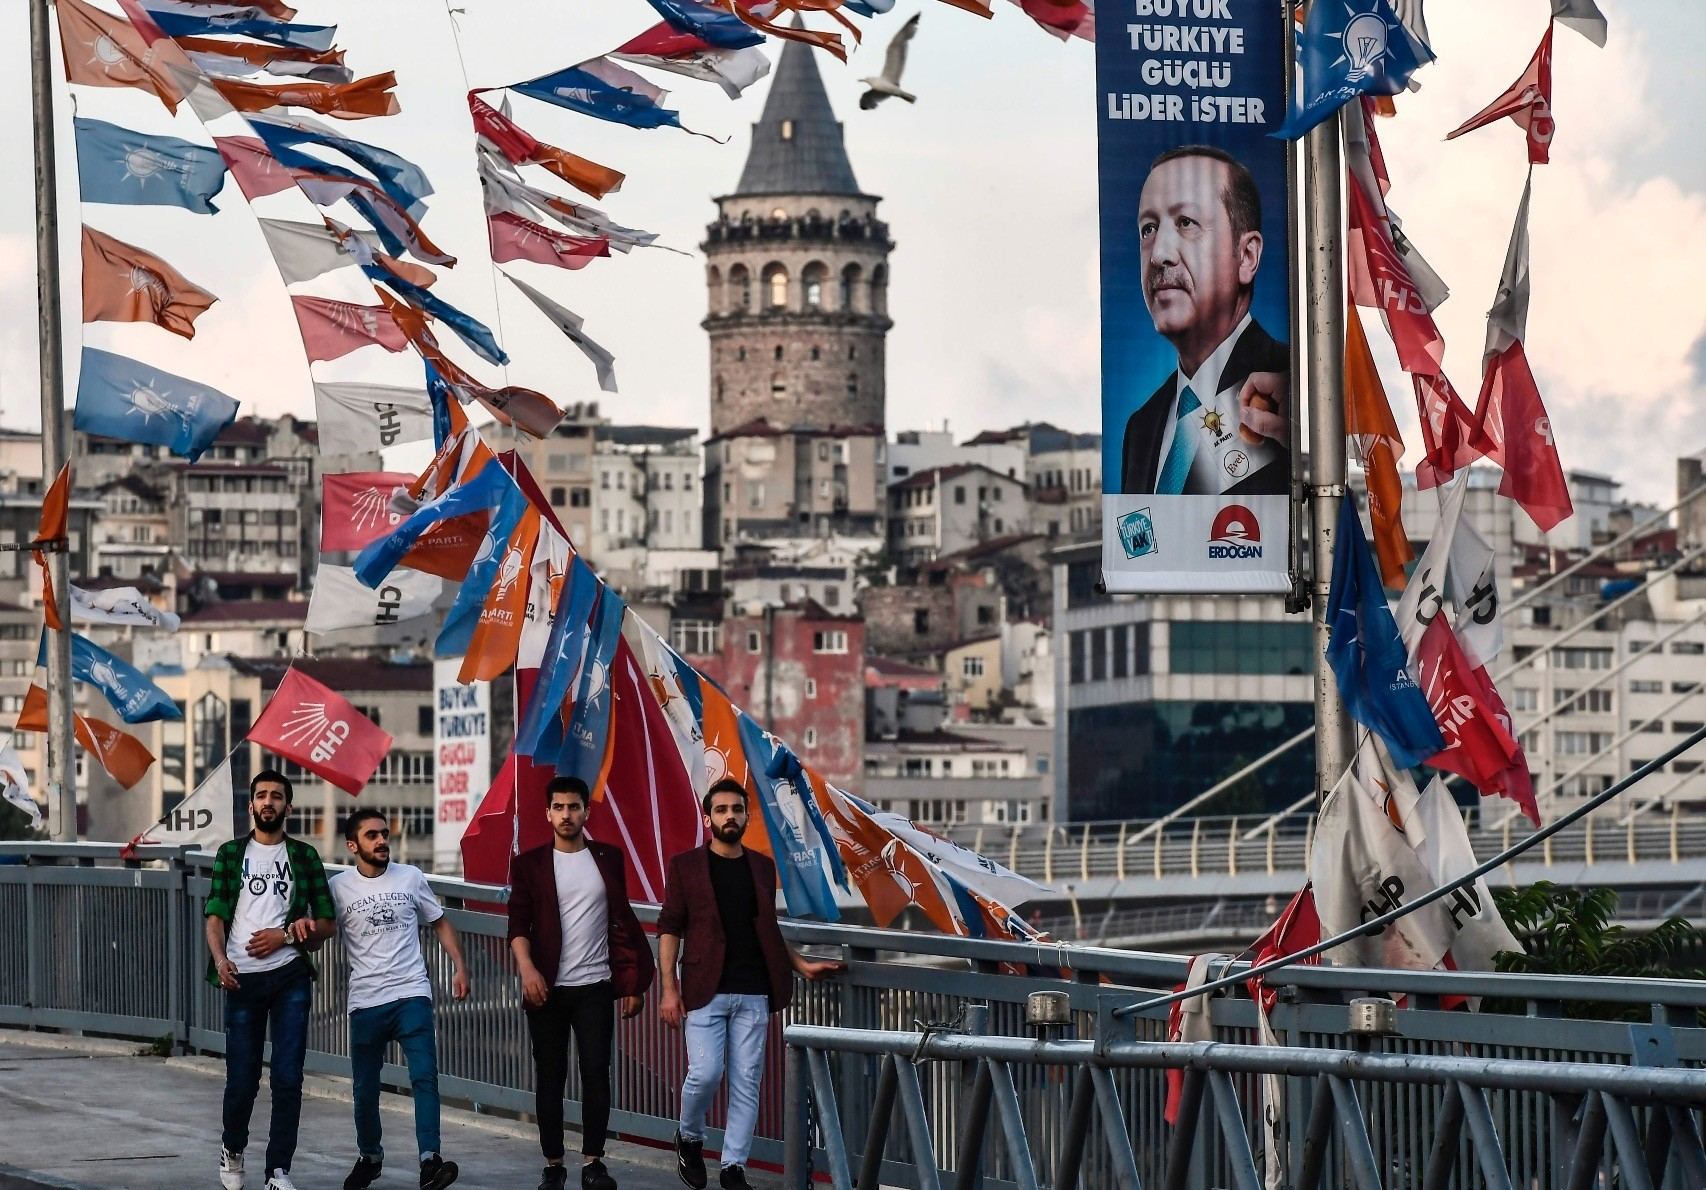 Onlookers pass by party campaign banners and a portrait of President Erdou011fan for the upcoming elections, Istanbul, June 18.